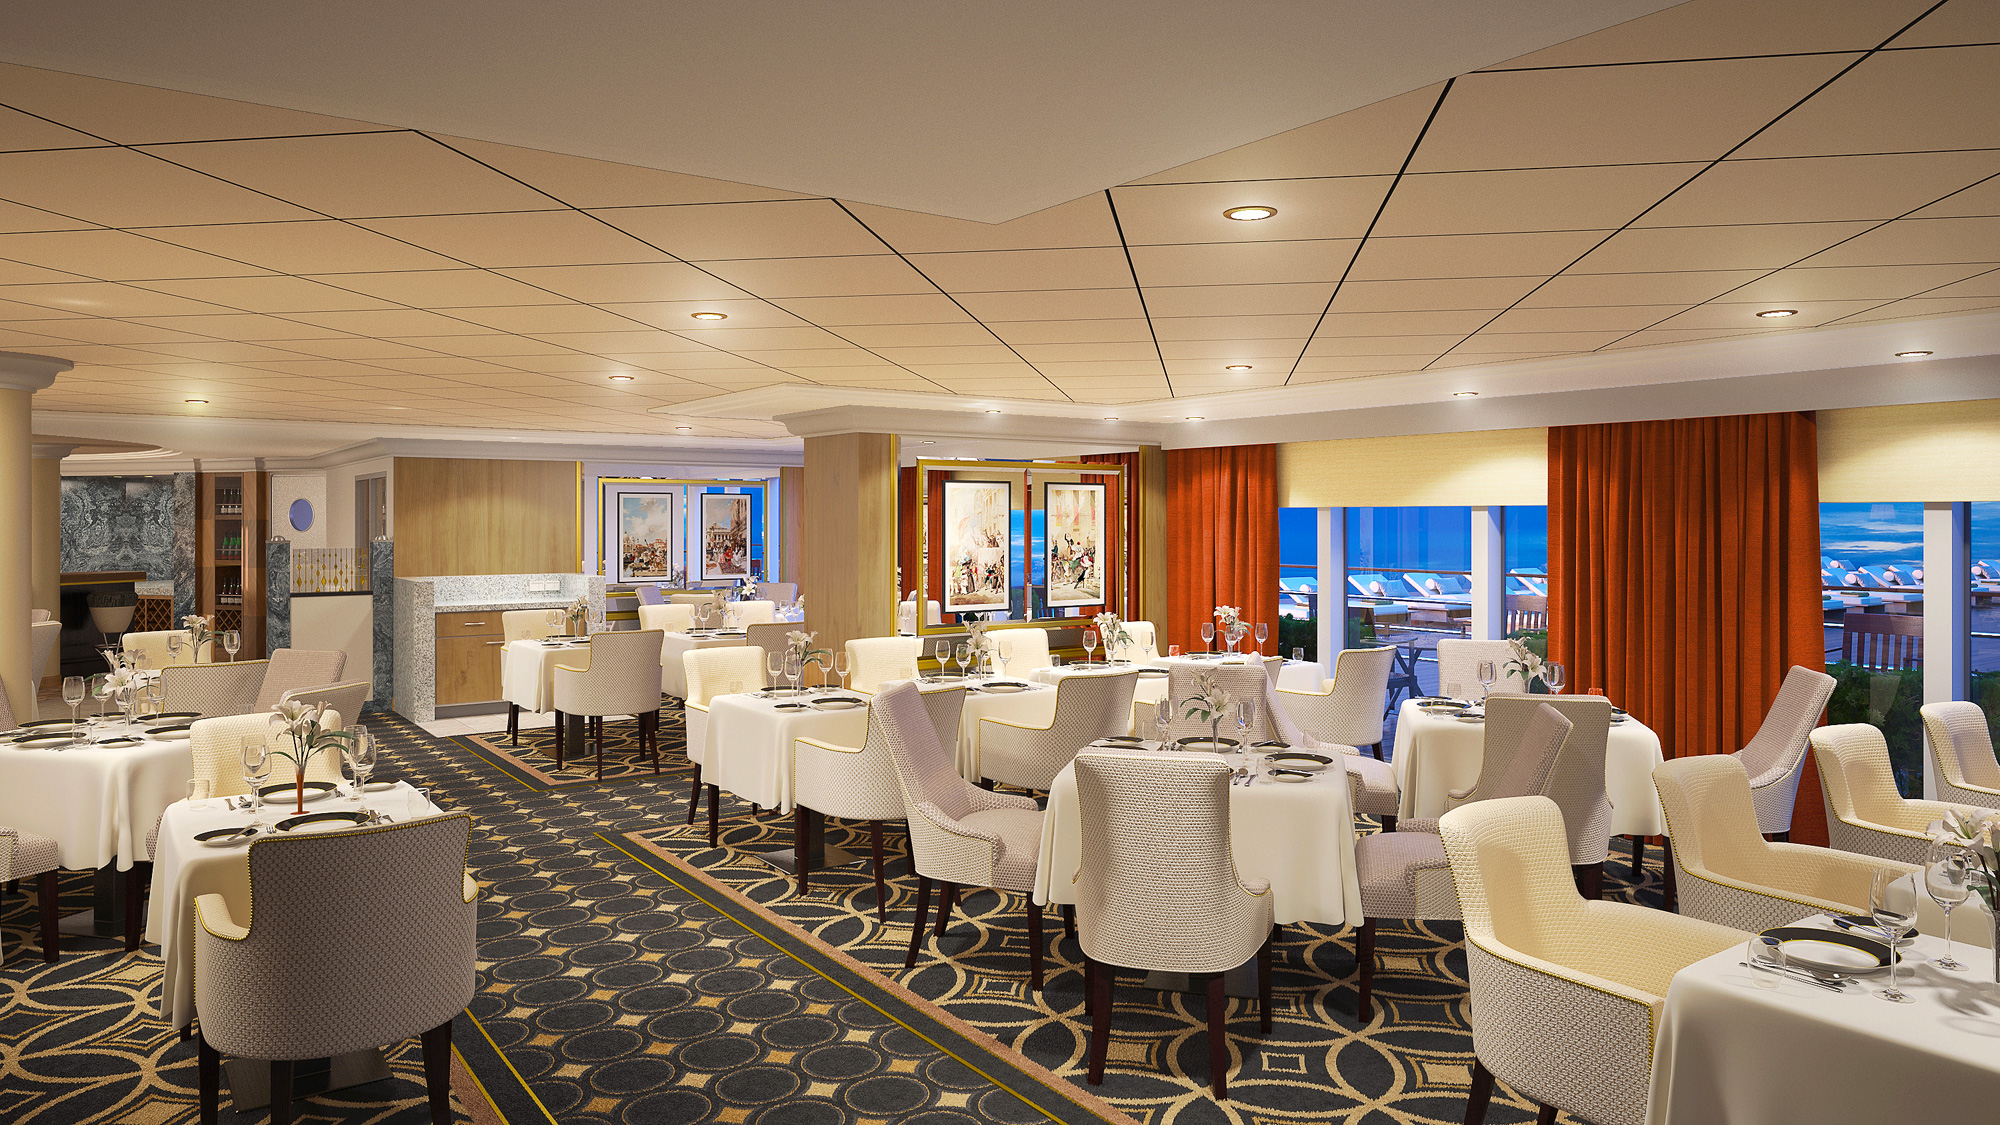 A rendering of the refurbished Verandah restaurant on the Queen Mary 2